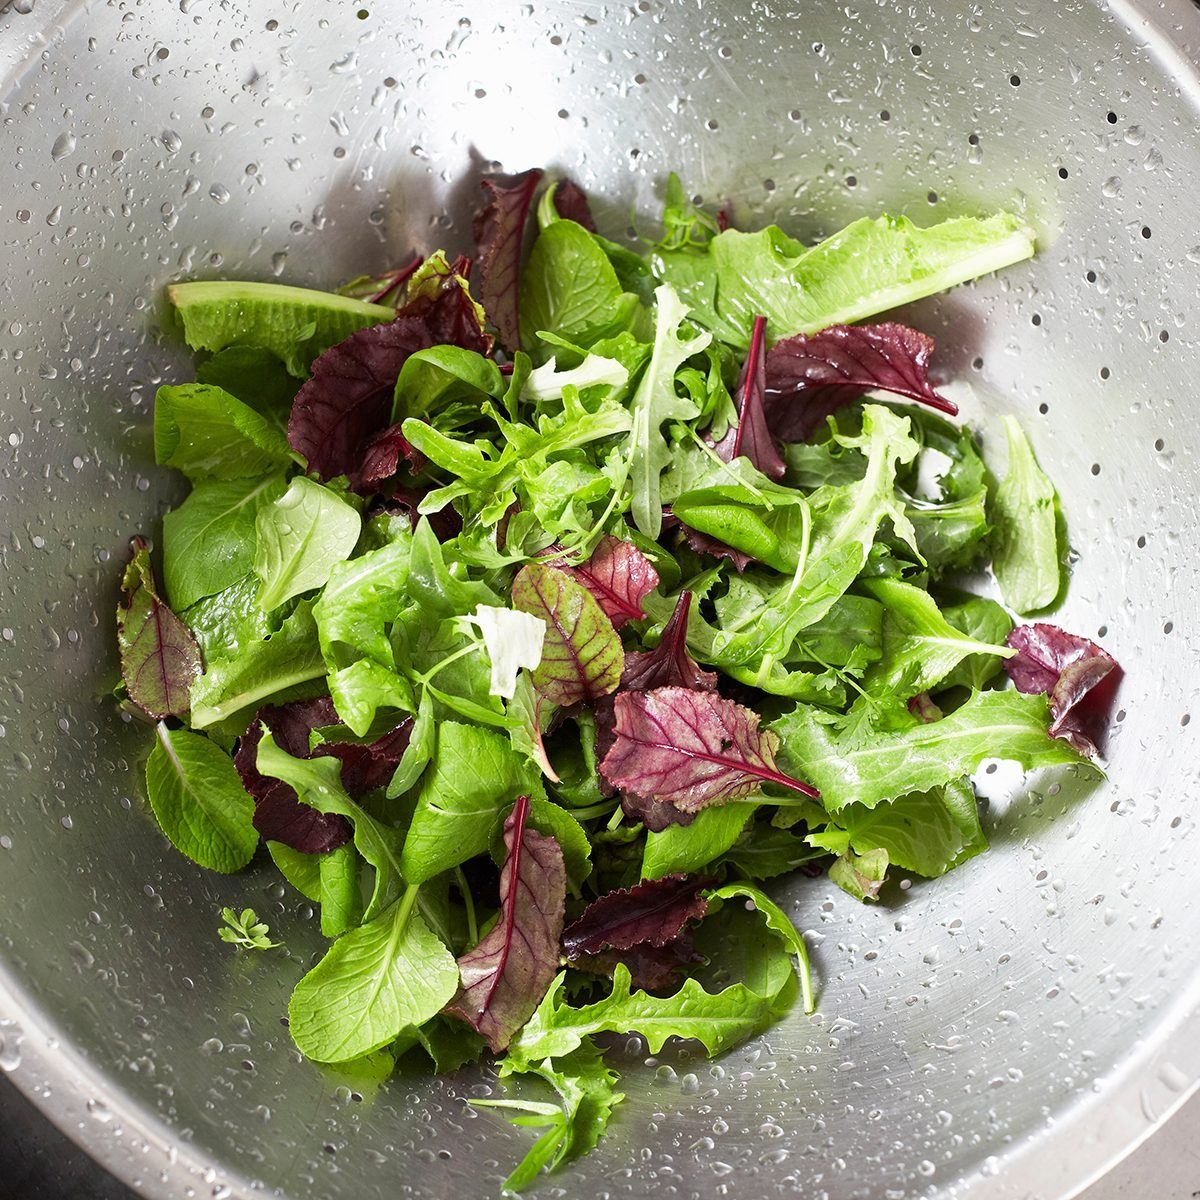 Washed salad in sieve